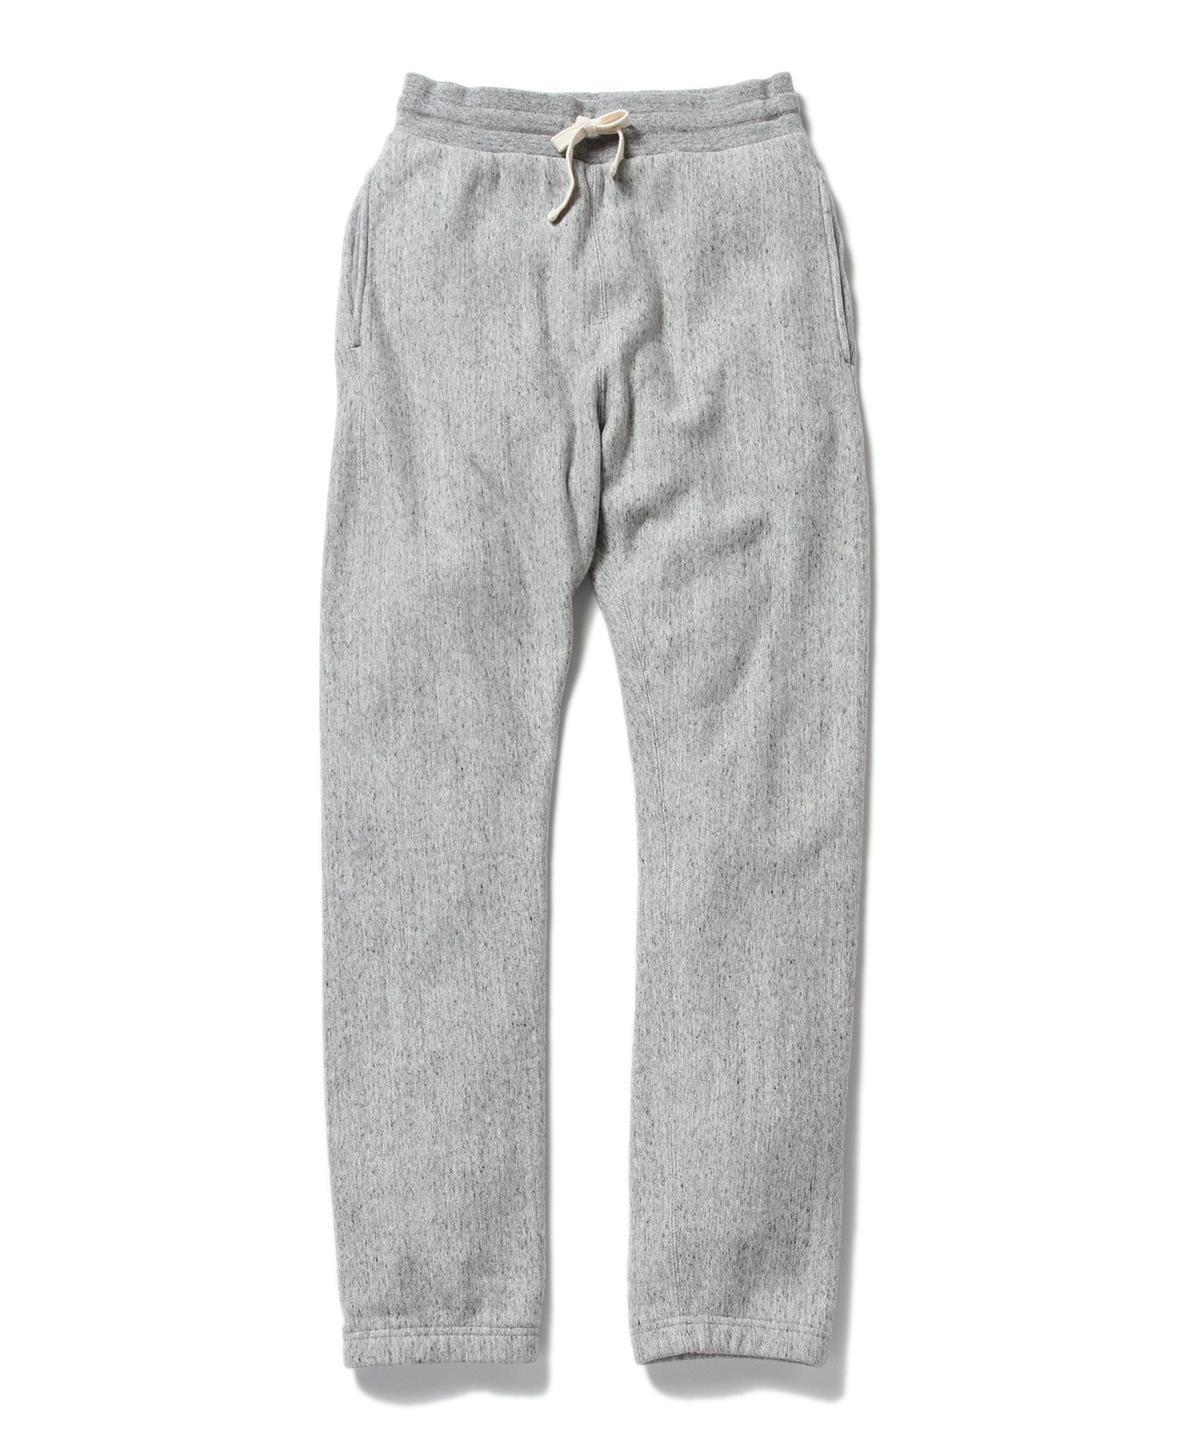 POLI French Terry Sweat Pant